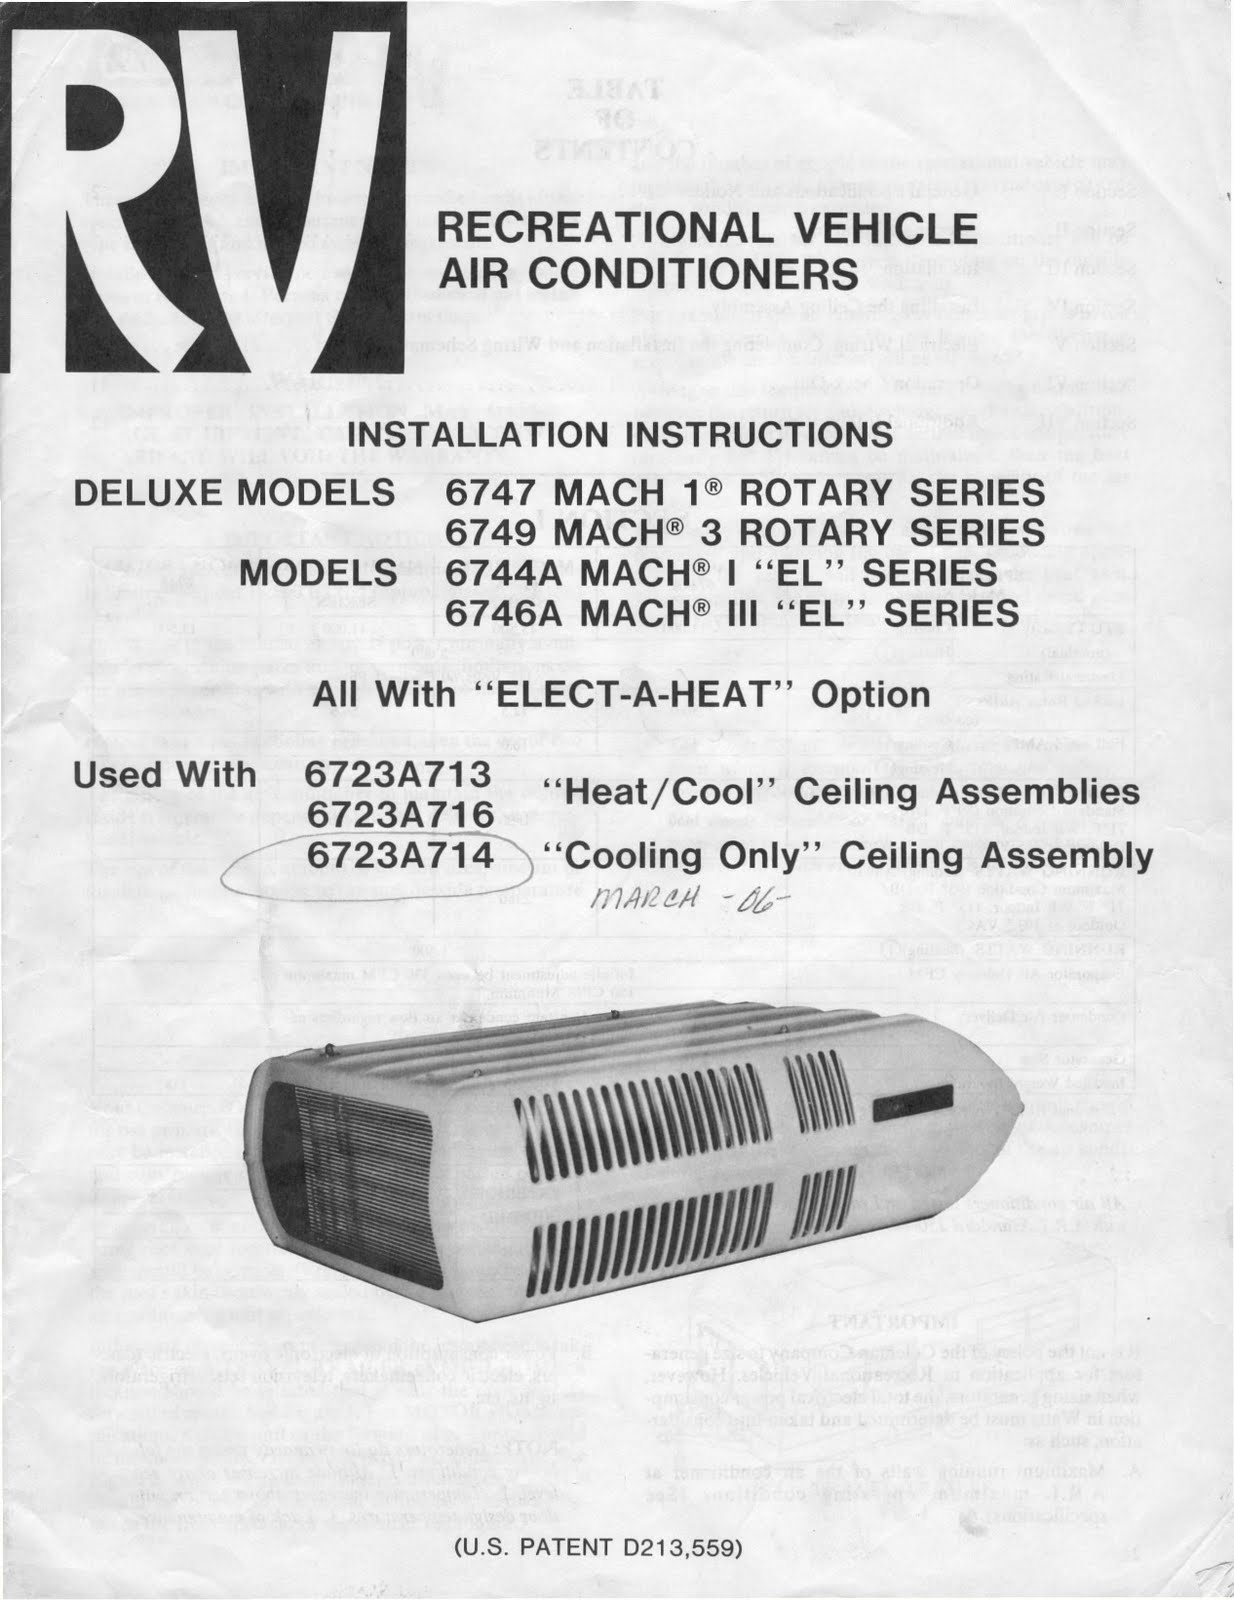 1983 Fleetwood Pace Arrow Owners Manuals: RV Air Conditioners ...